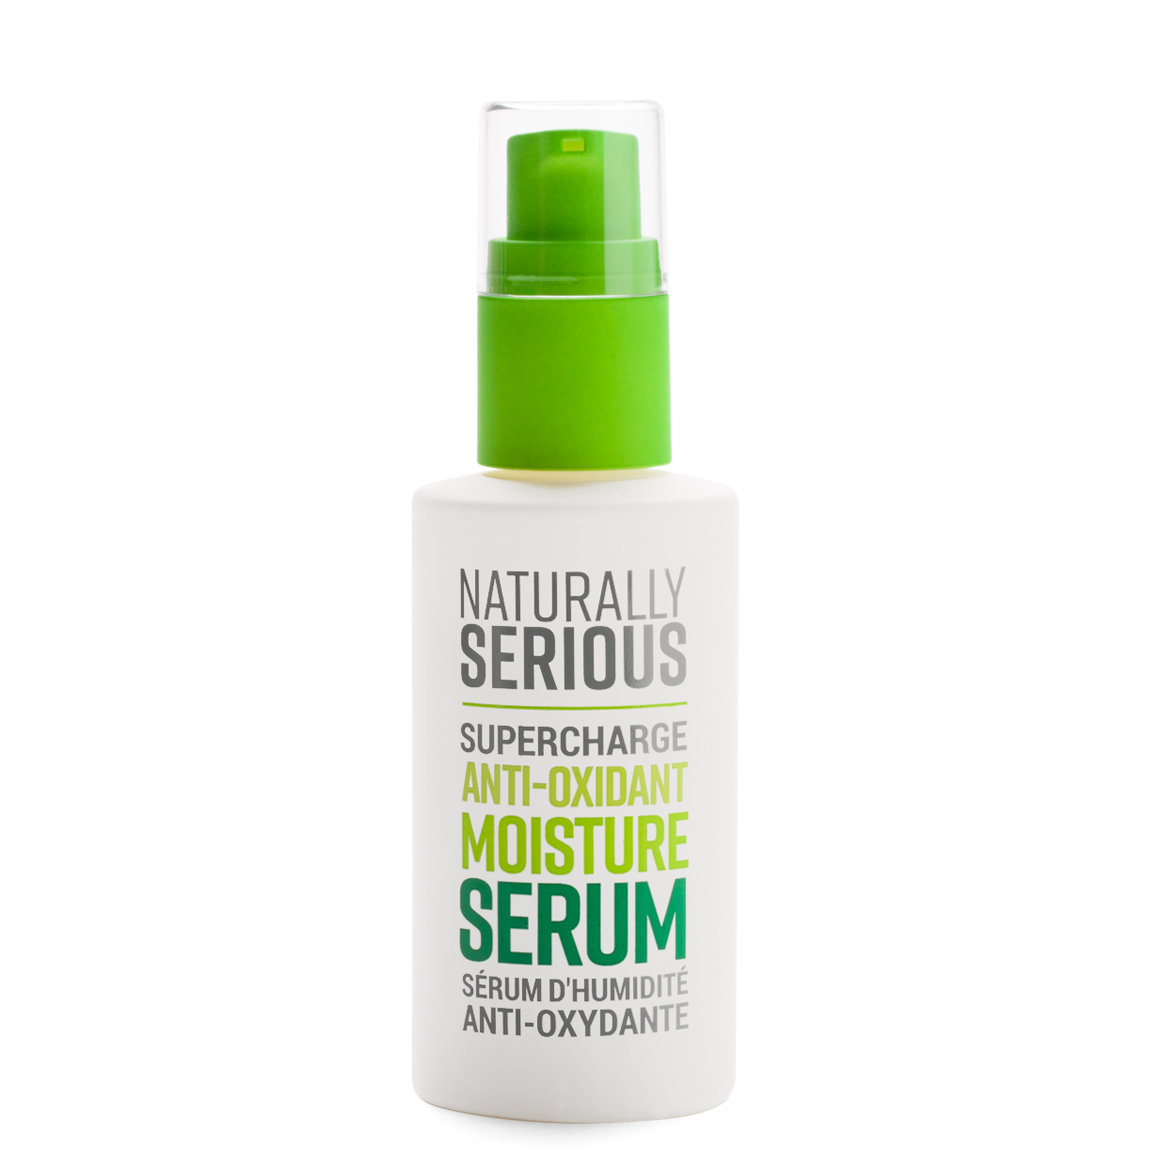 Naturally Serious Supercharge Anti-Oxidant Moisture Serum product smear.